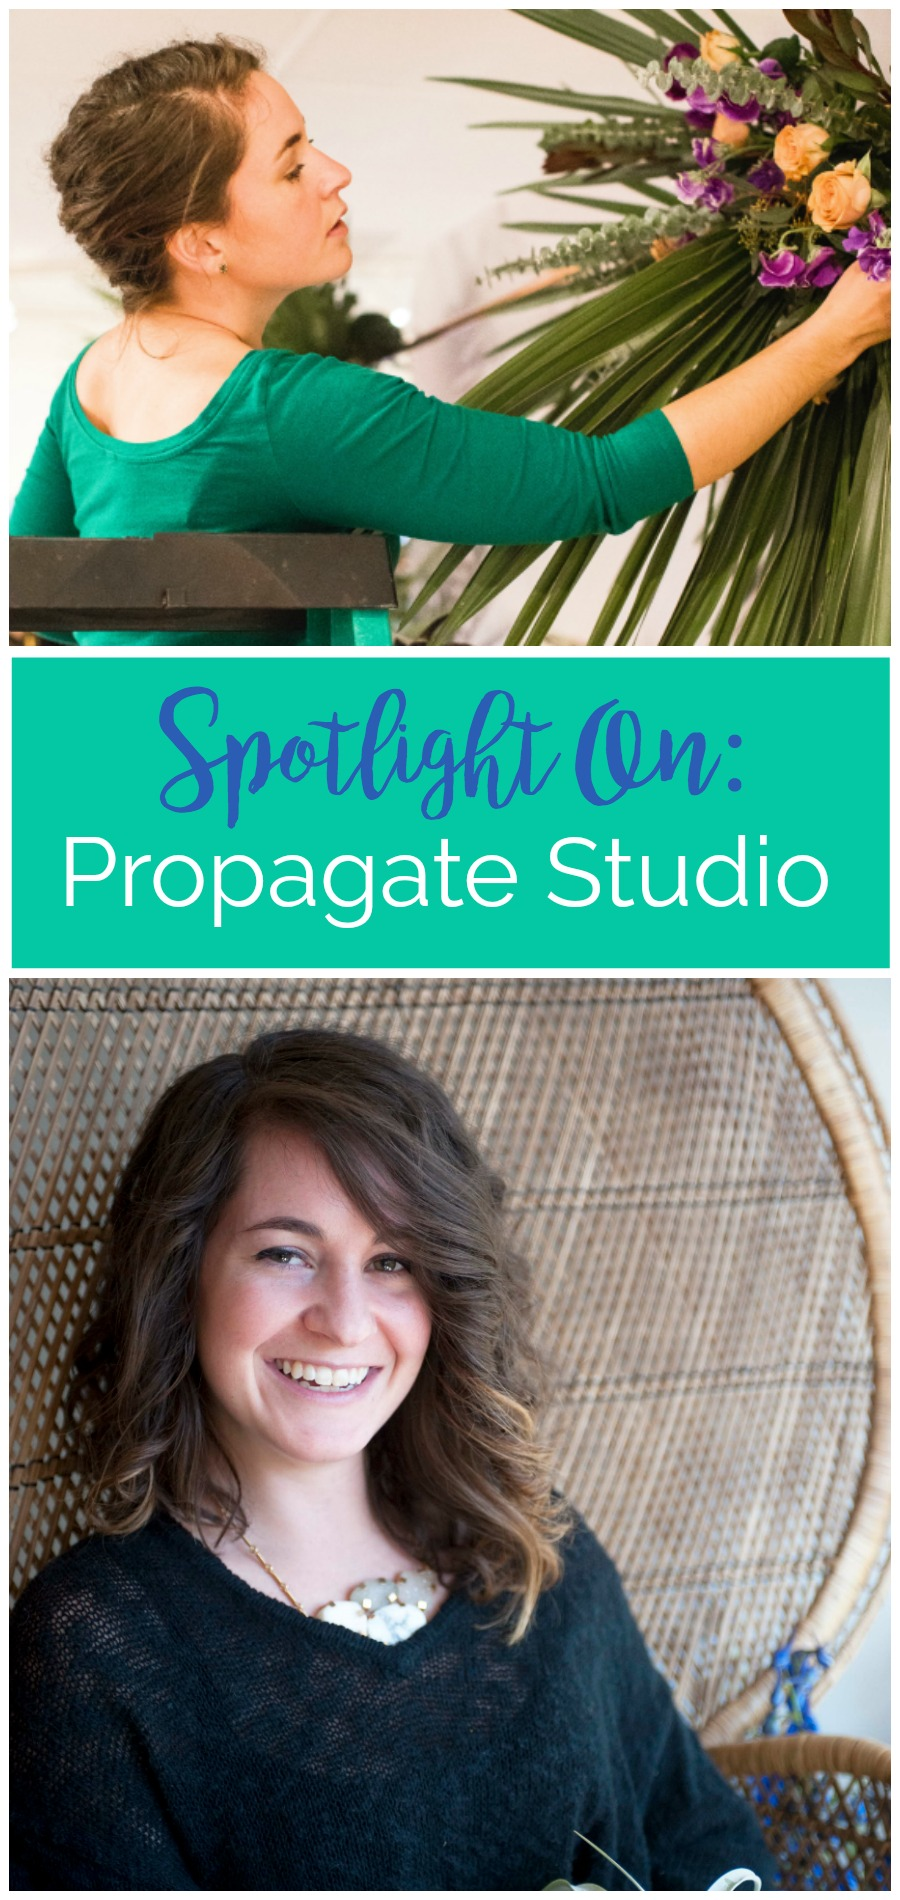 Spotlight On: Propagate Studio | Palmetto State Weddings